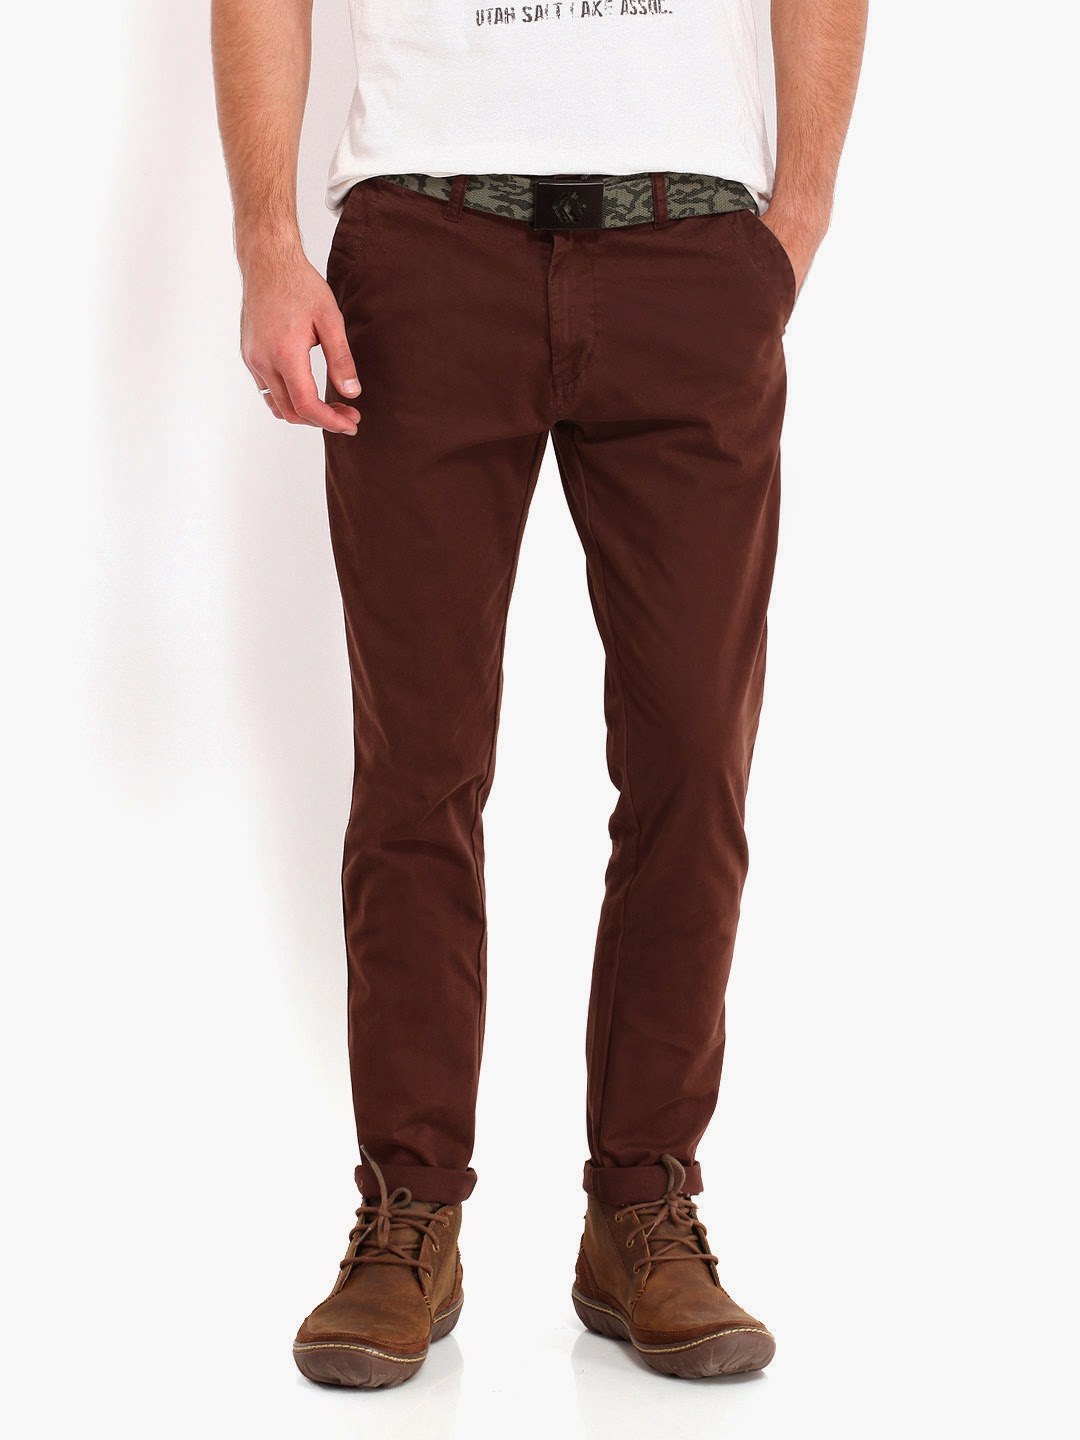 http://www.myntra.com/trousers/roadster/roadster-men-maroon-baley-colored-torino-slim-fit-chino-trousers/273395/buy?src=search&uq=&q=men-chinos-trousers&p=4